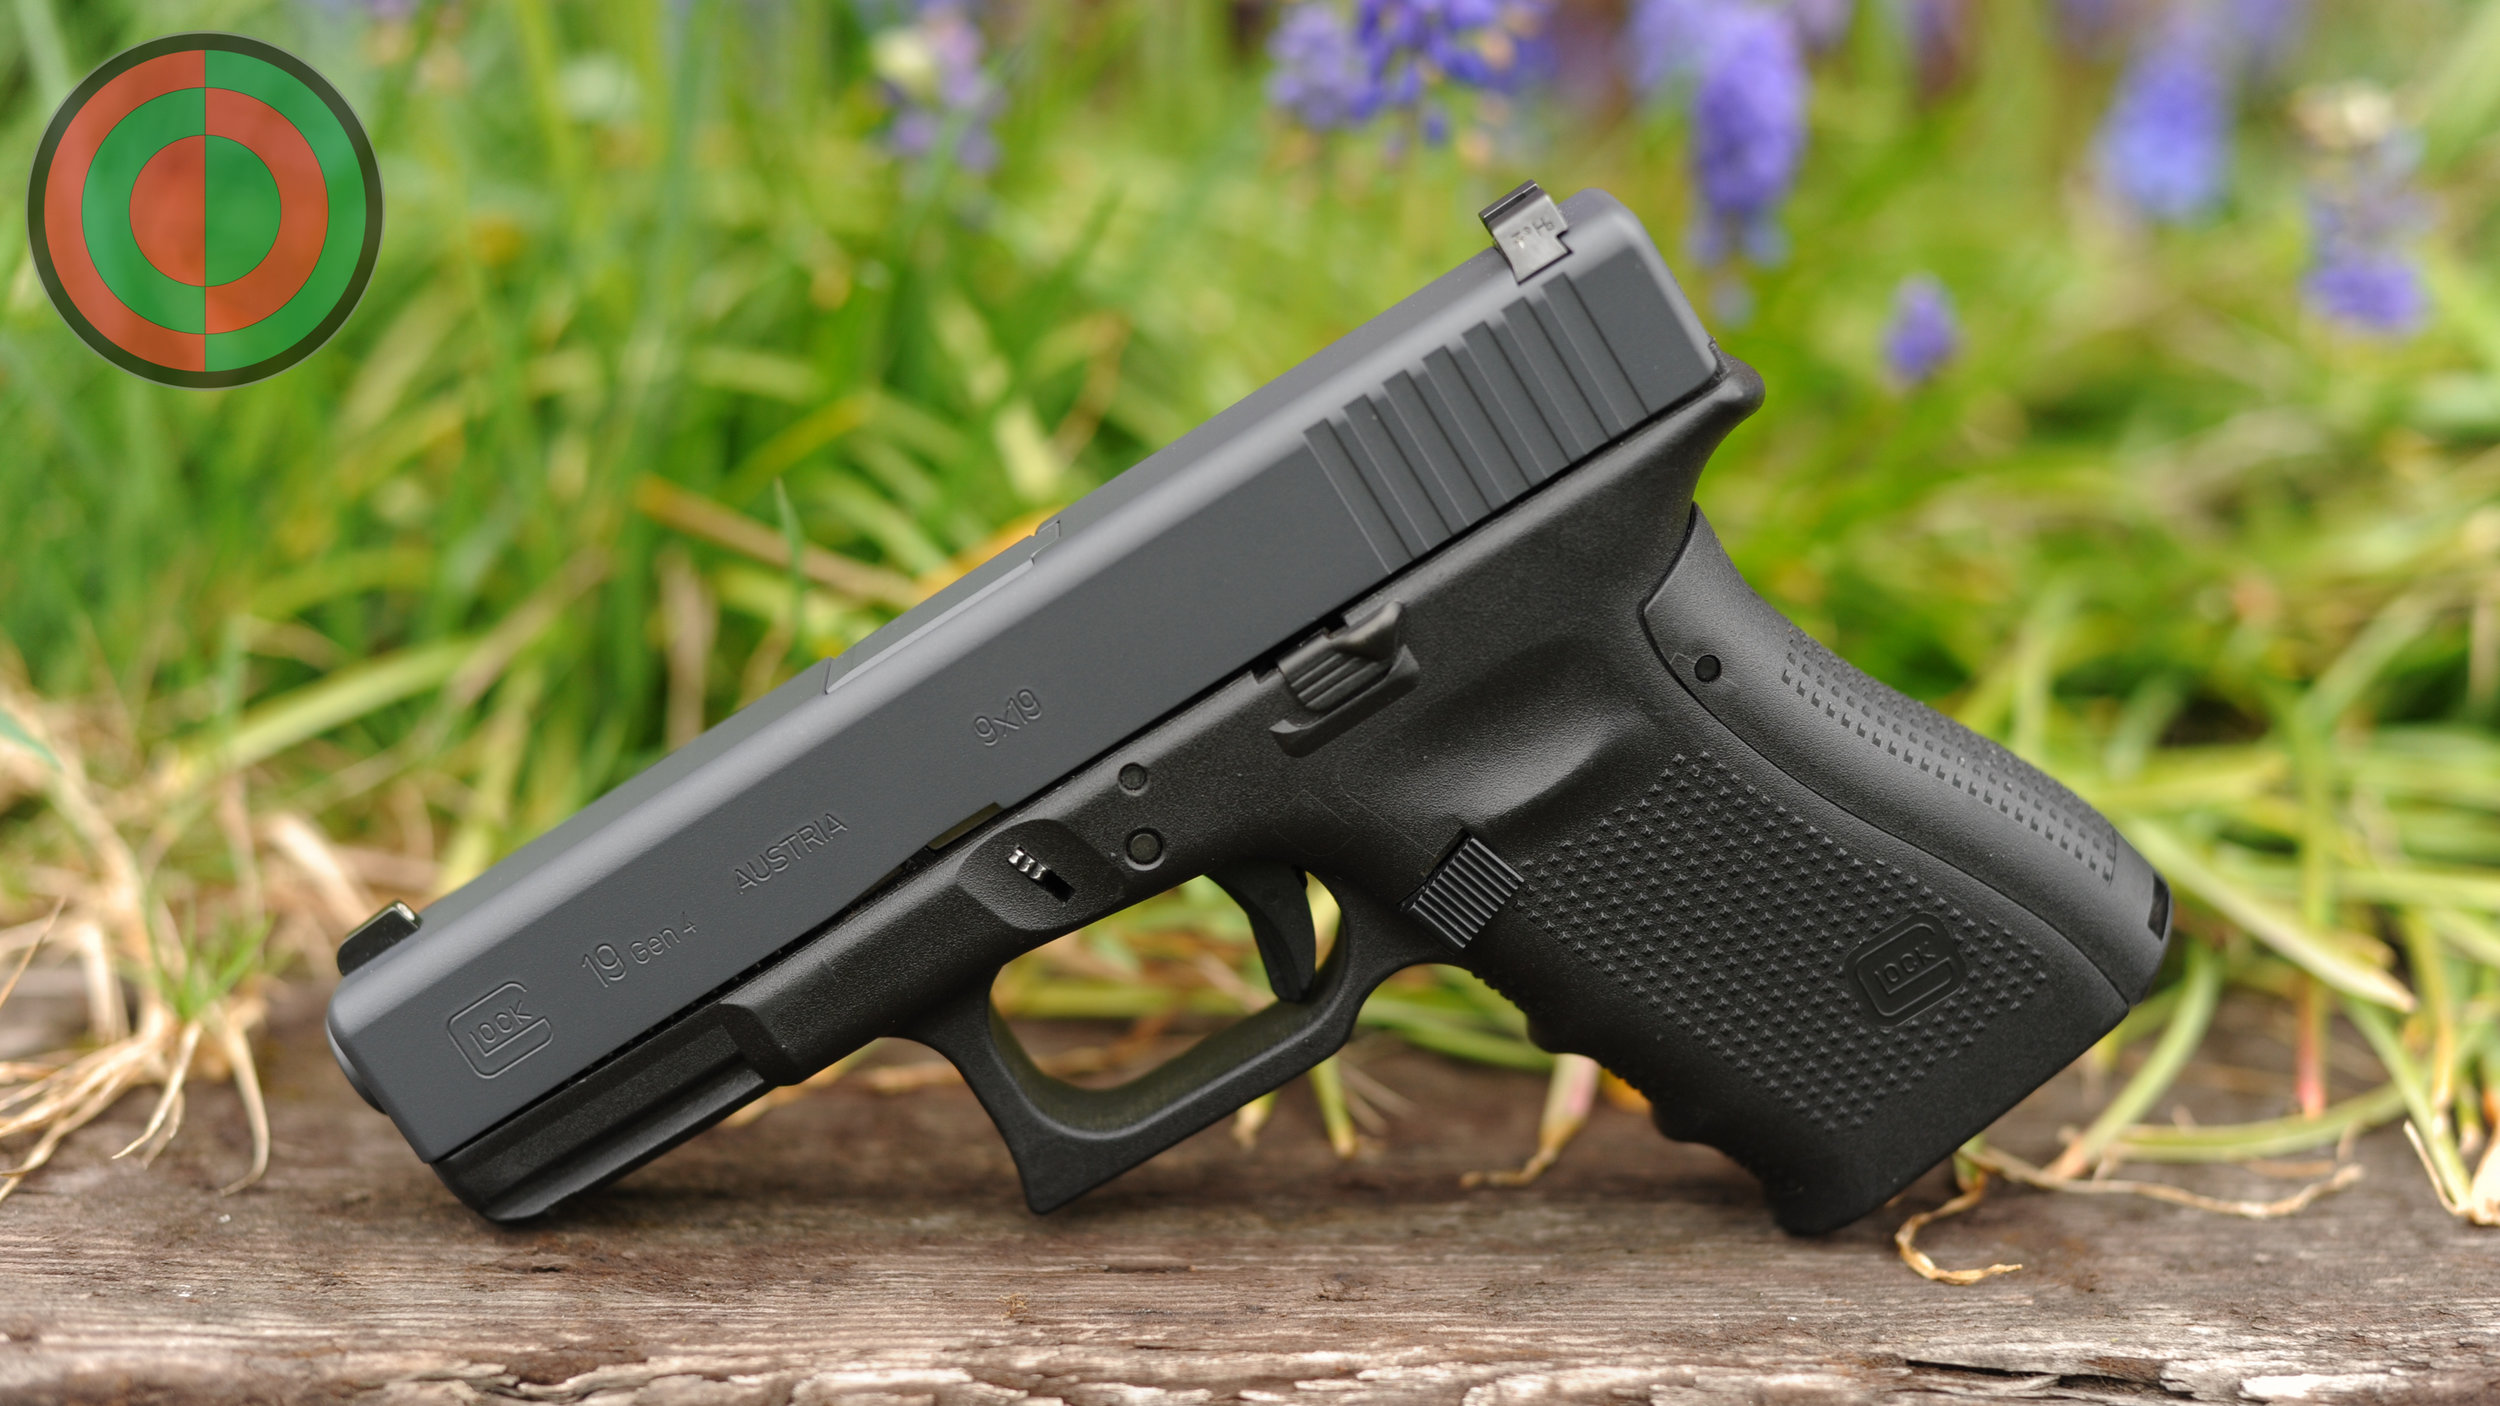 Glock 19 featuring a Black Hammer Grey slide and barrel.